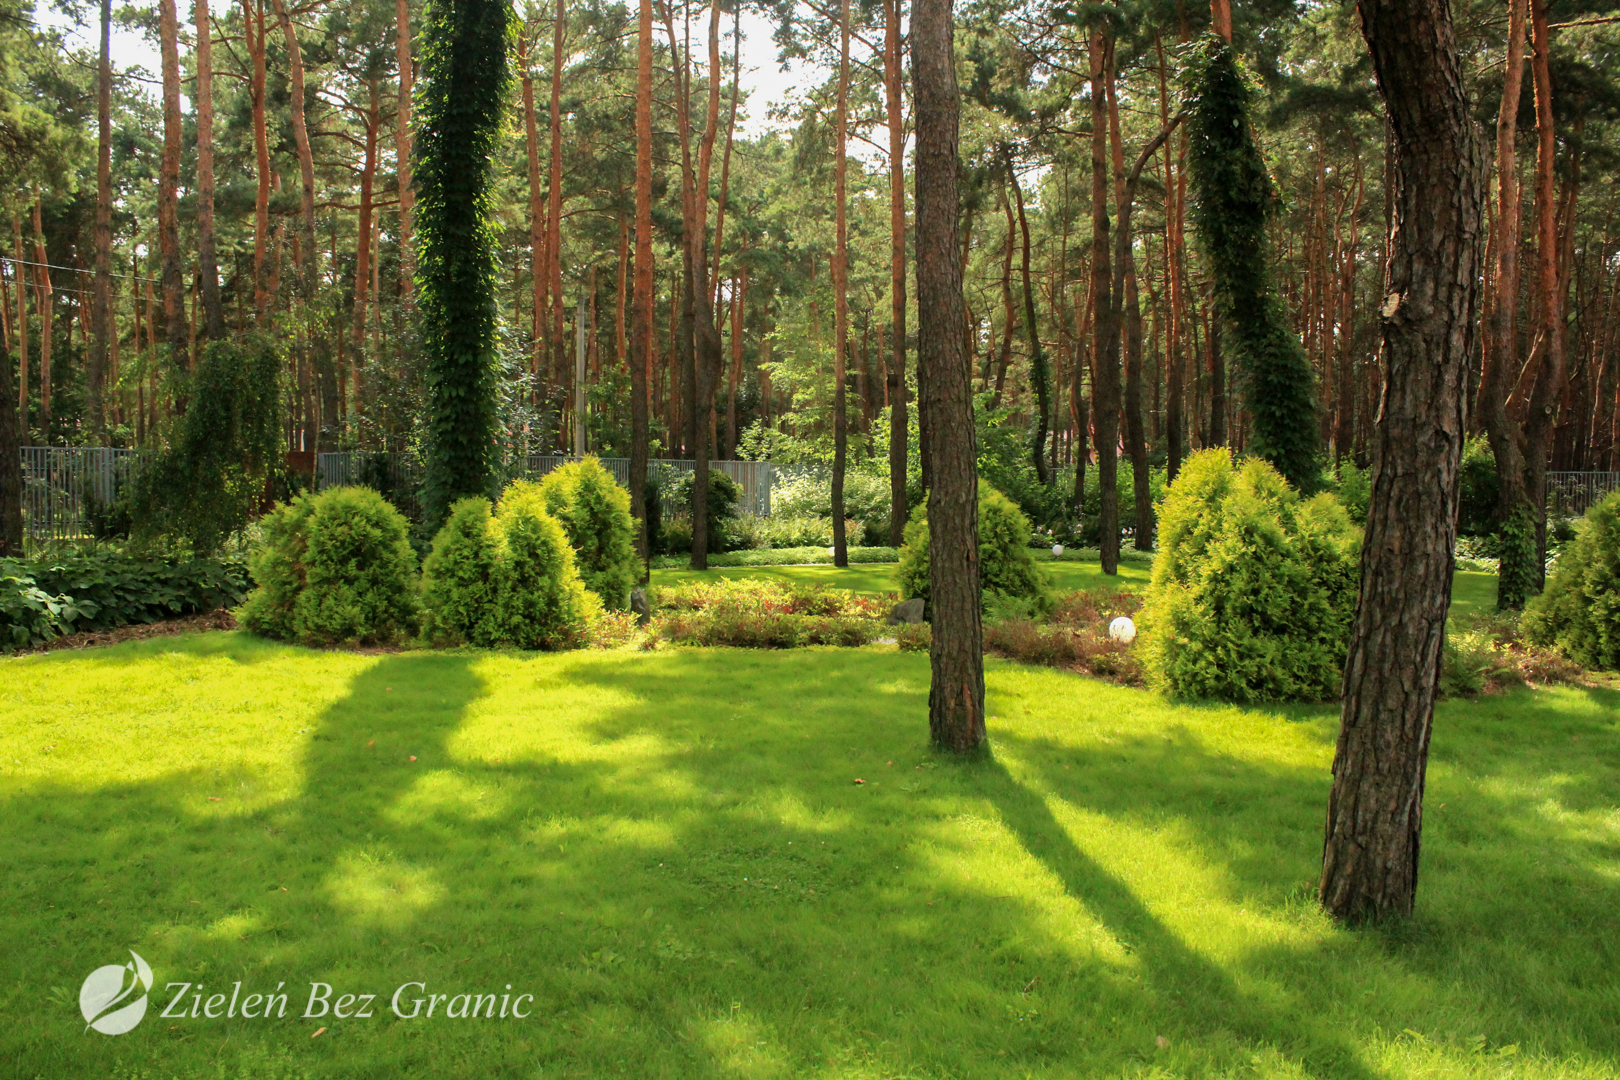 Forest Garden in Józefów